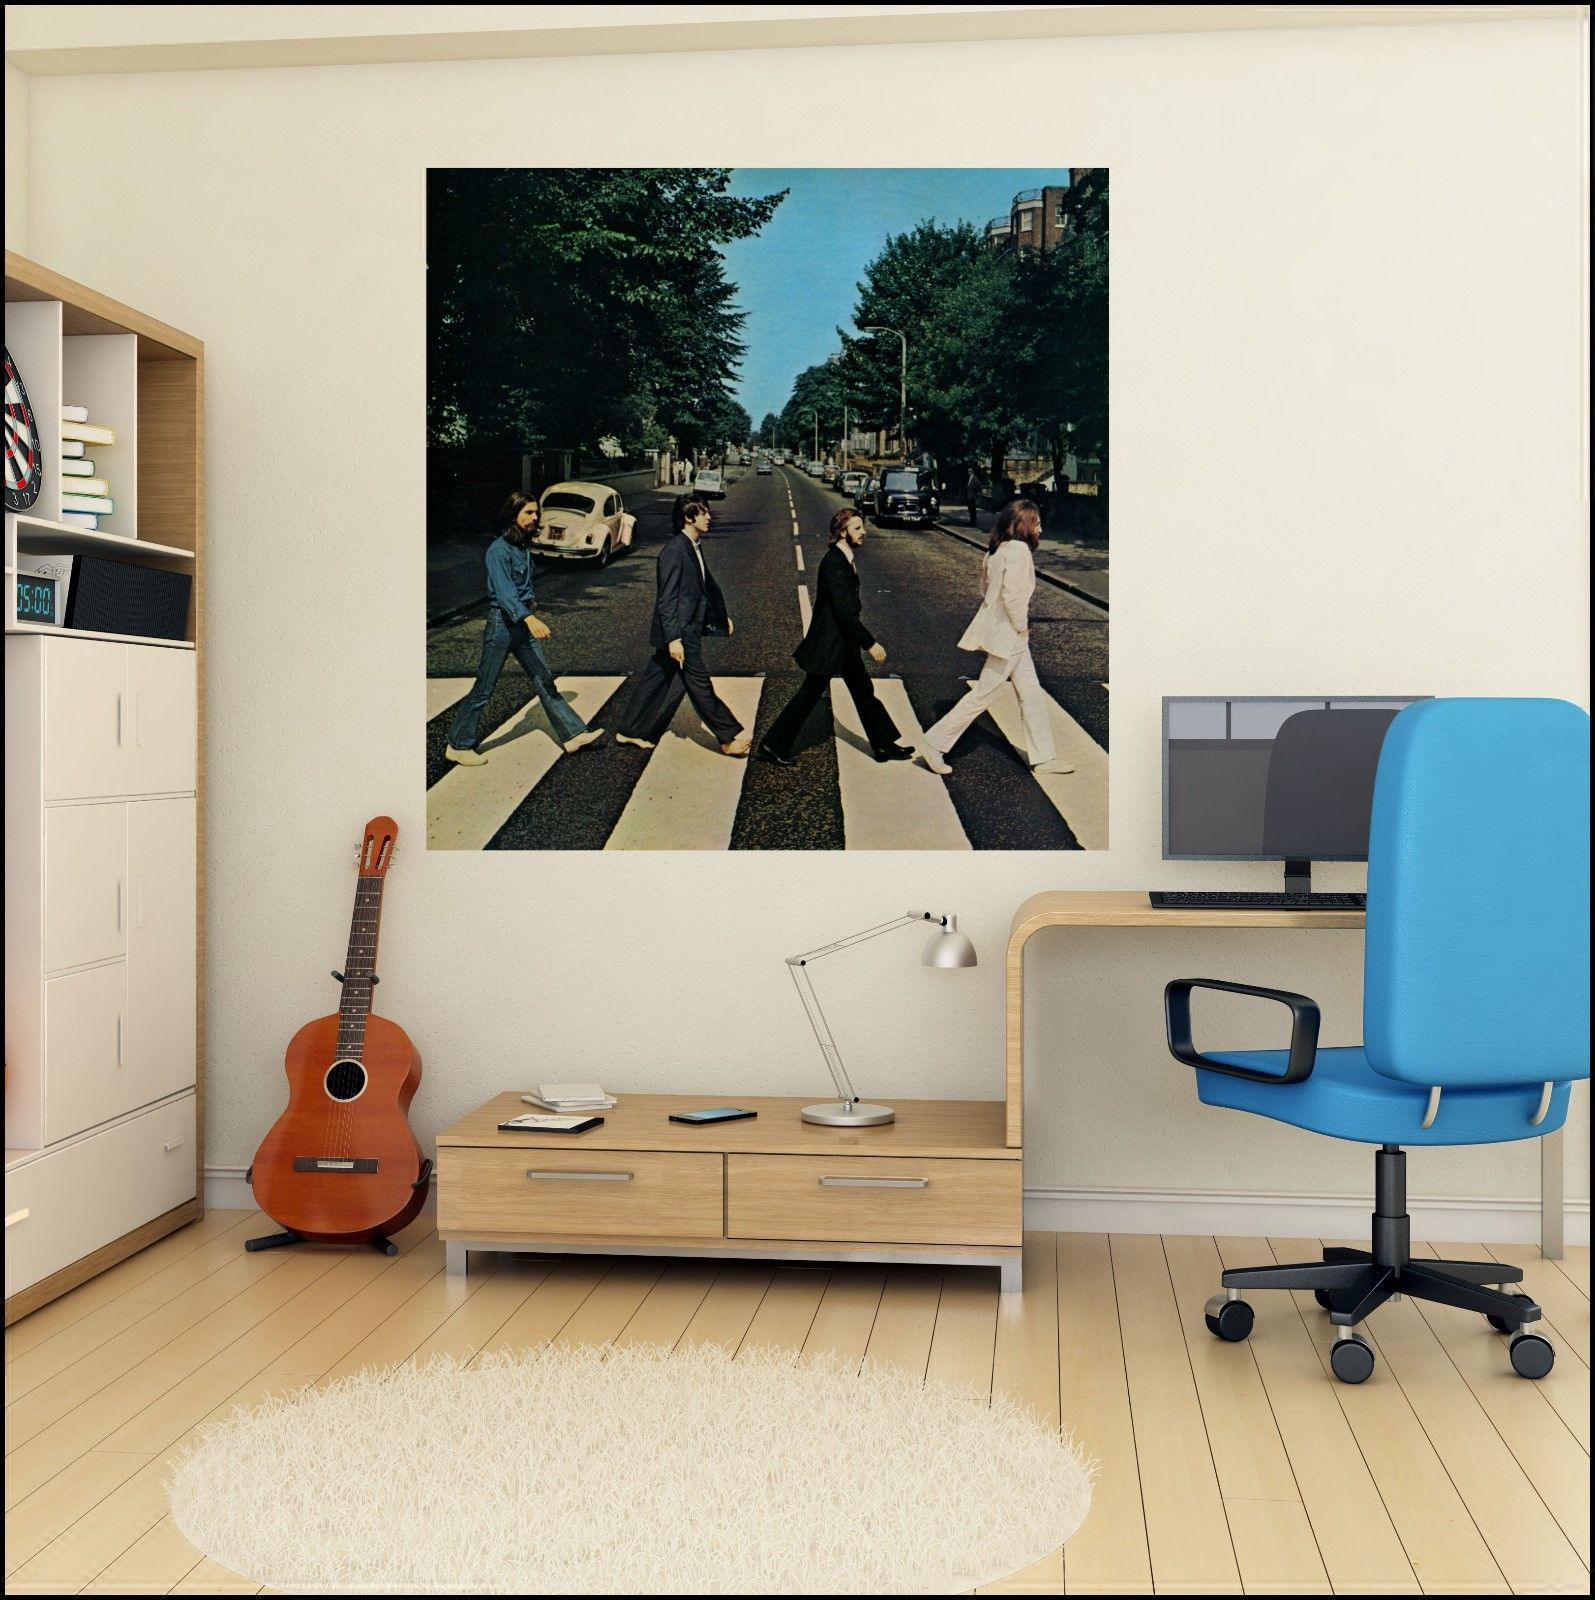 The beatles abbey road album cover photo wall sticker 6 for Beatles wall mural